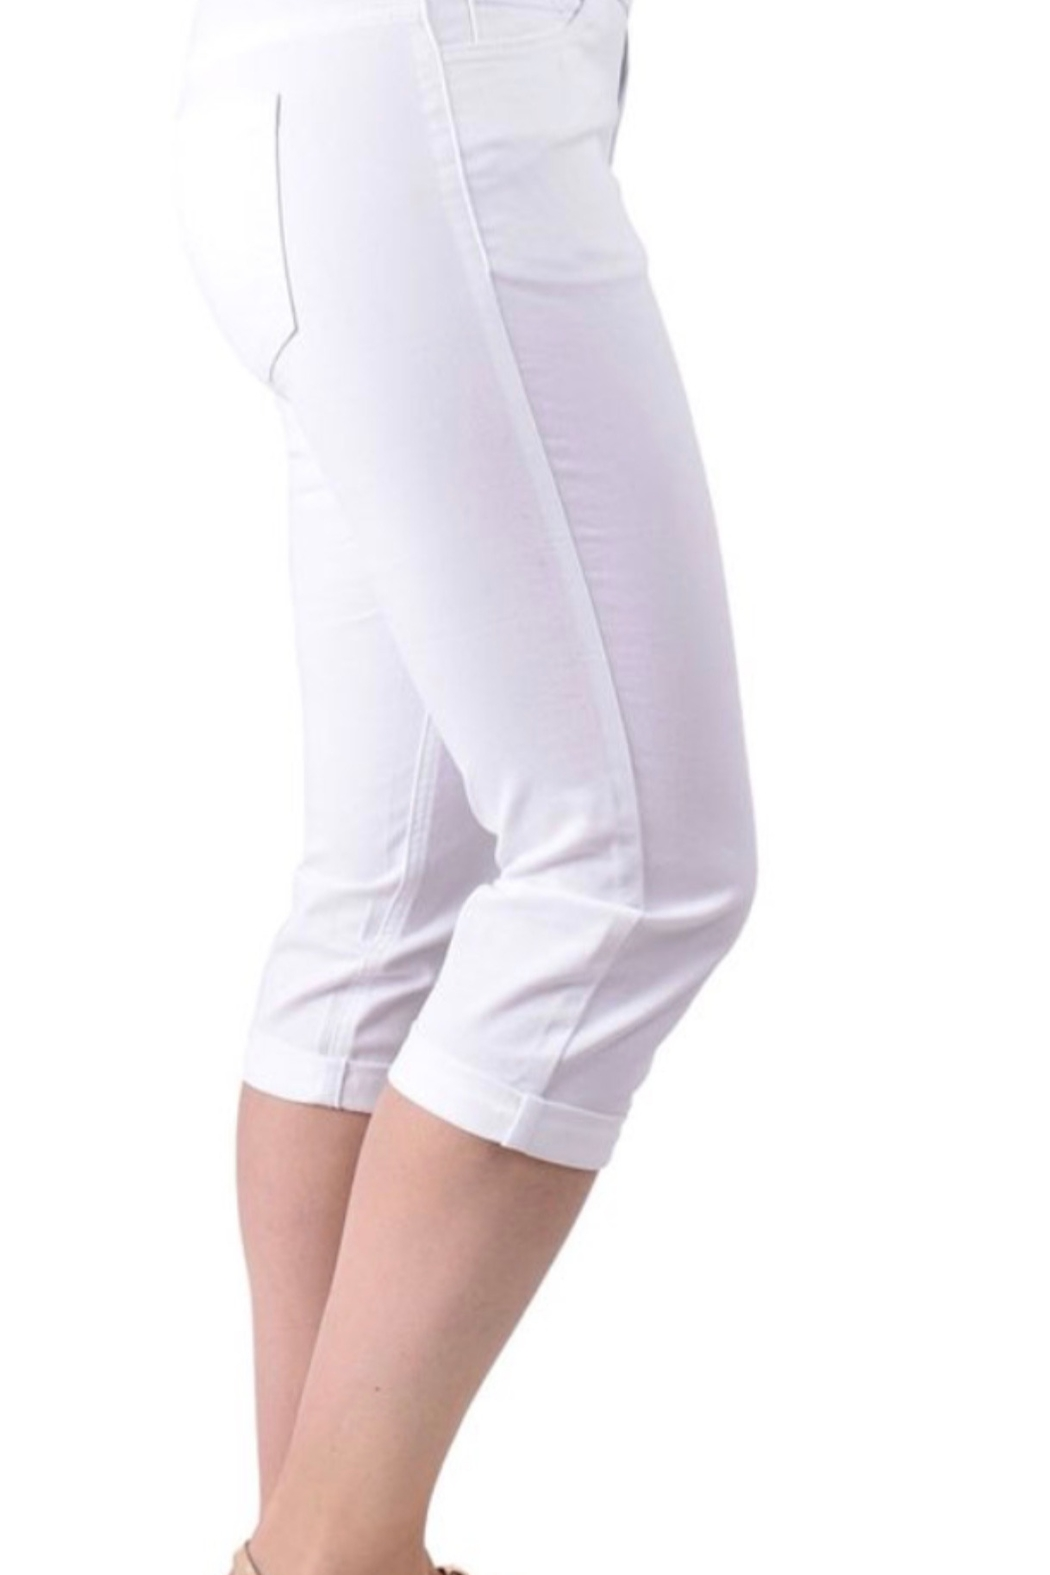 Ethyl Chattanooga Pull on white capris pant with roll up hem. - Front Full Image